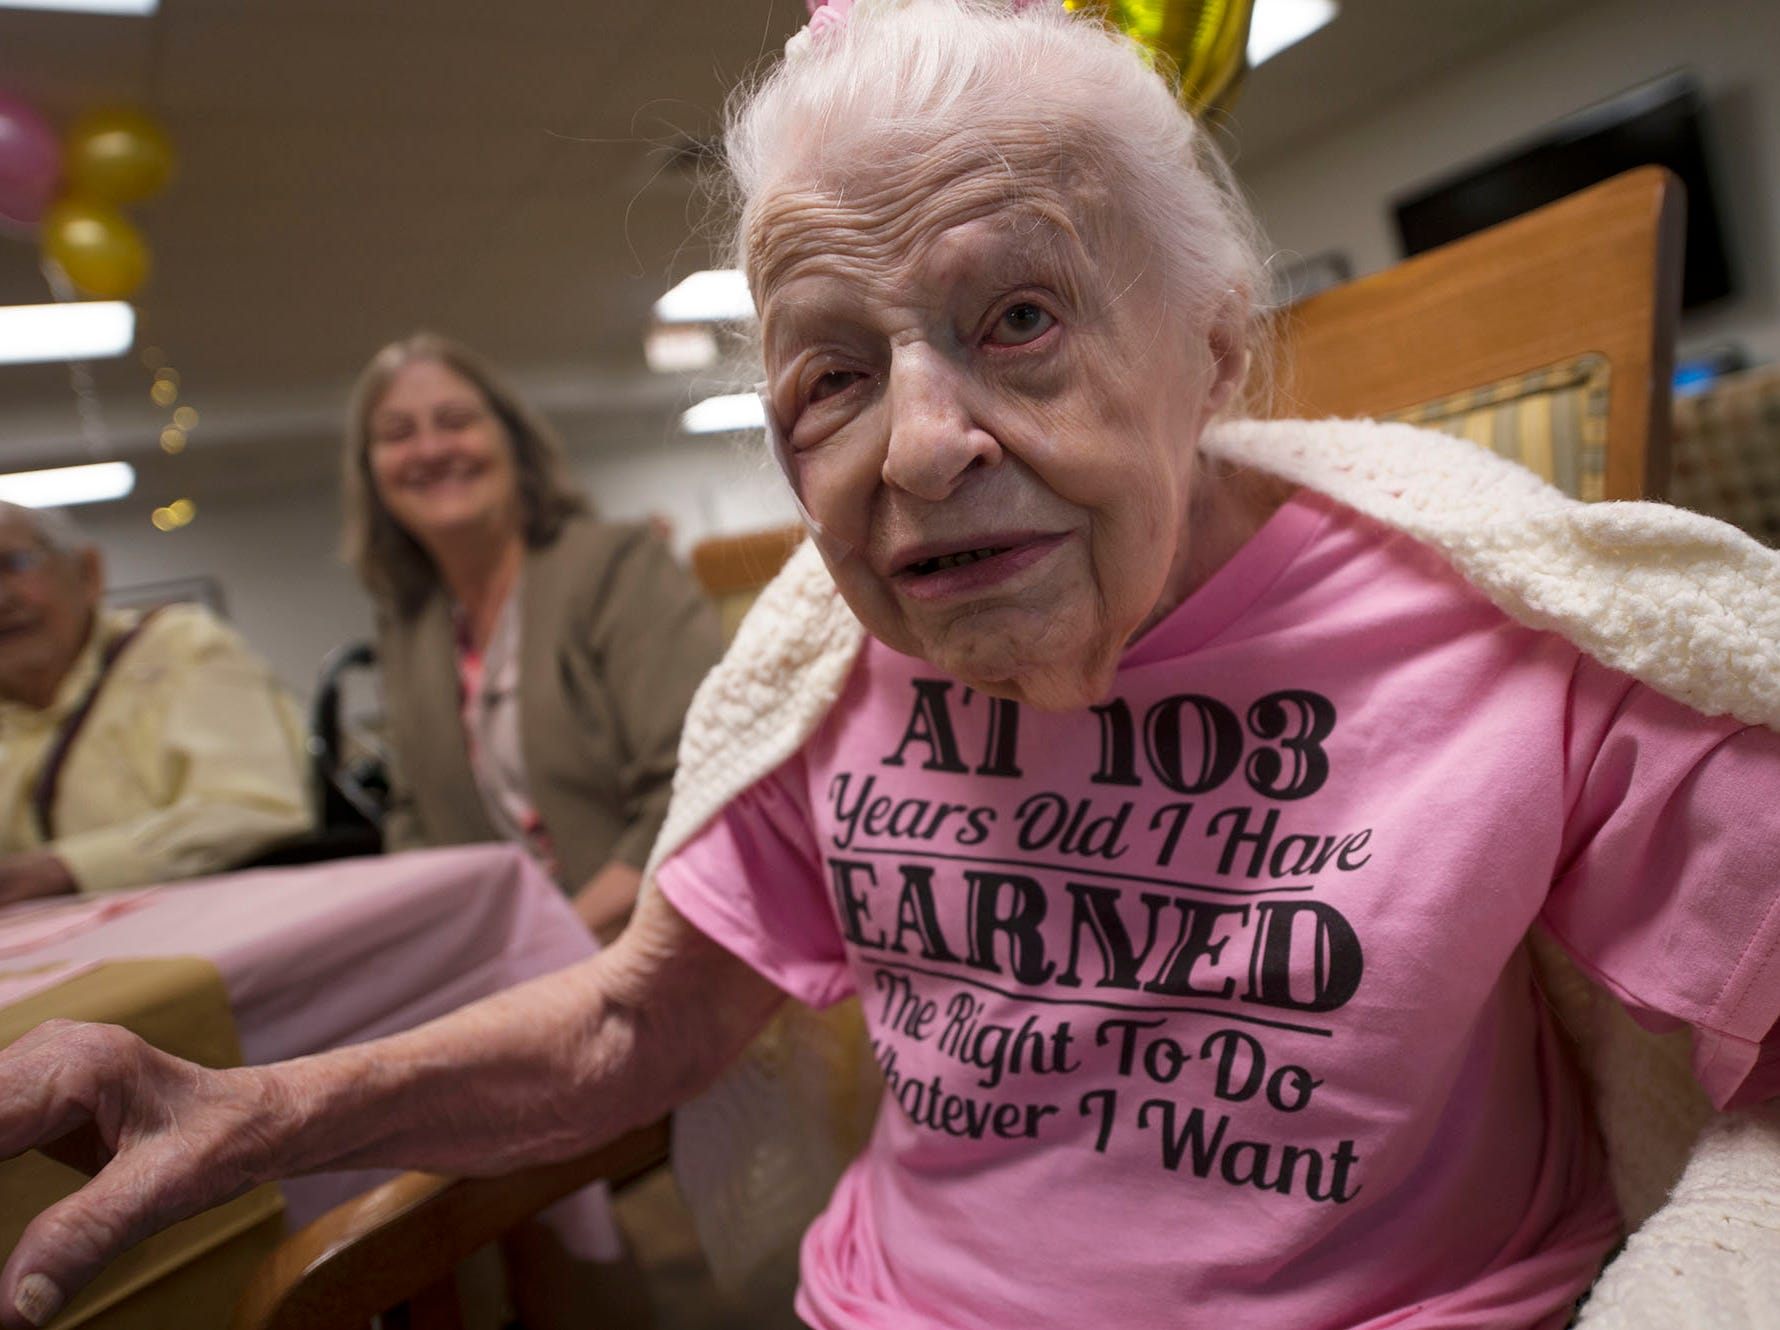 Lillian Hoff, who turned 103-years-old, wers a special t-shirt  at her birthday party on Monday, September 10, 2018 at Providence Place, Chambersburg. Hoff, a homemaker,  was born in 1915 in Akron, OH, and raised her three children in Cleveland. Family, staff and their children attended the party in the facility's terrace.